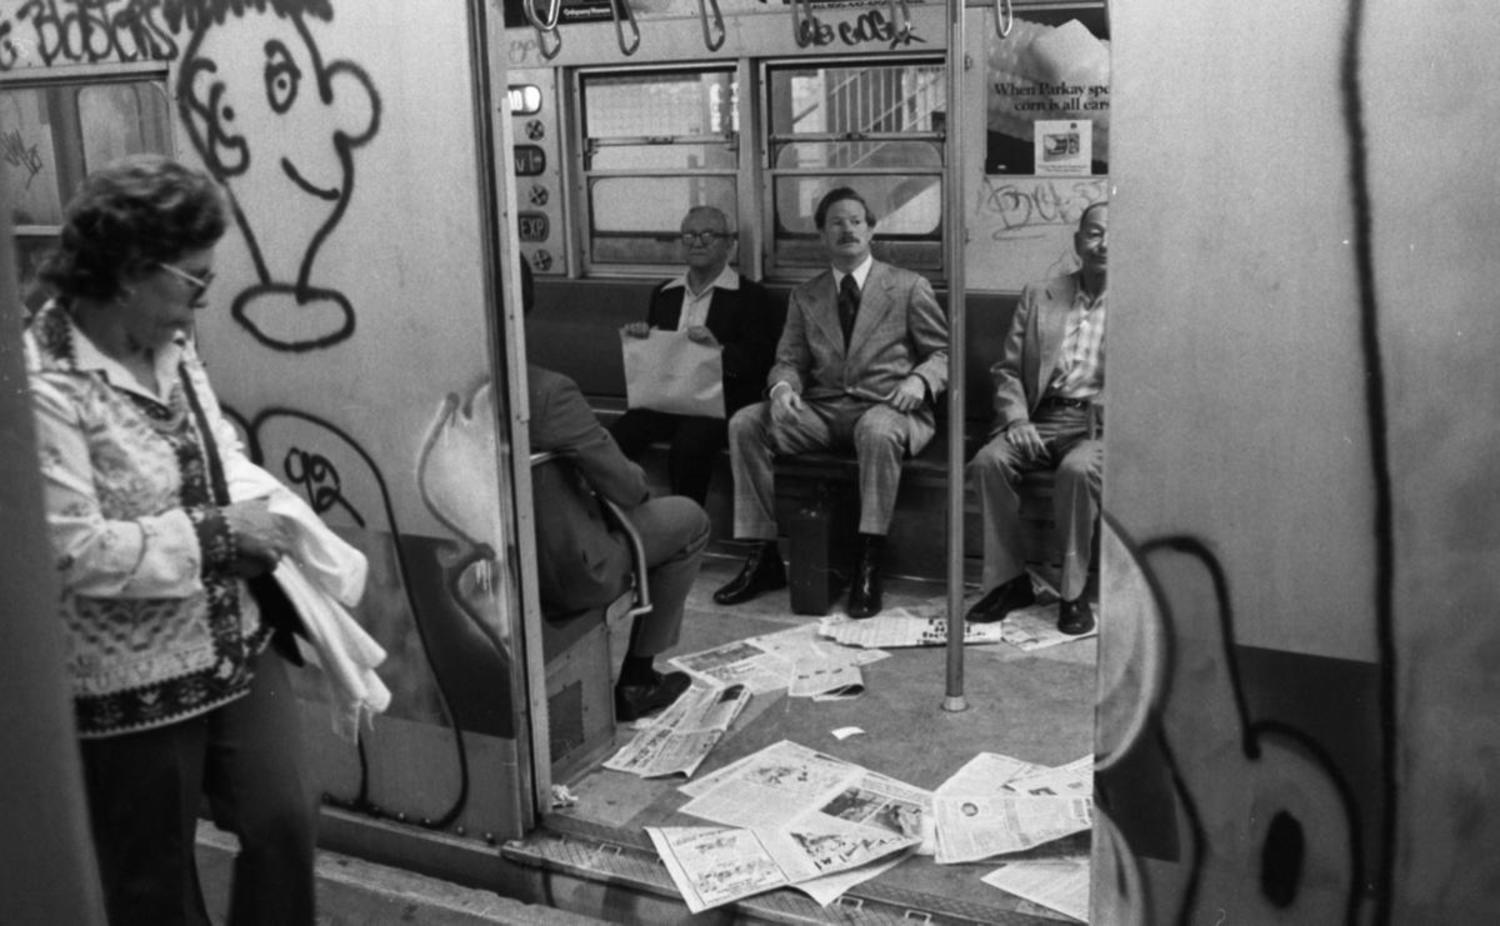 1970's: Despite the more than 40 percent increase in subway fare, this 1975 subway car is still covered in graffiti and littered with trash.